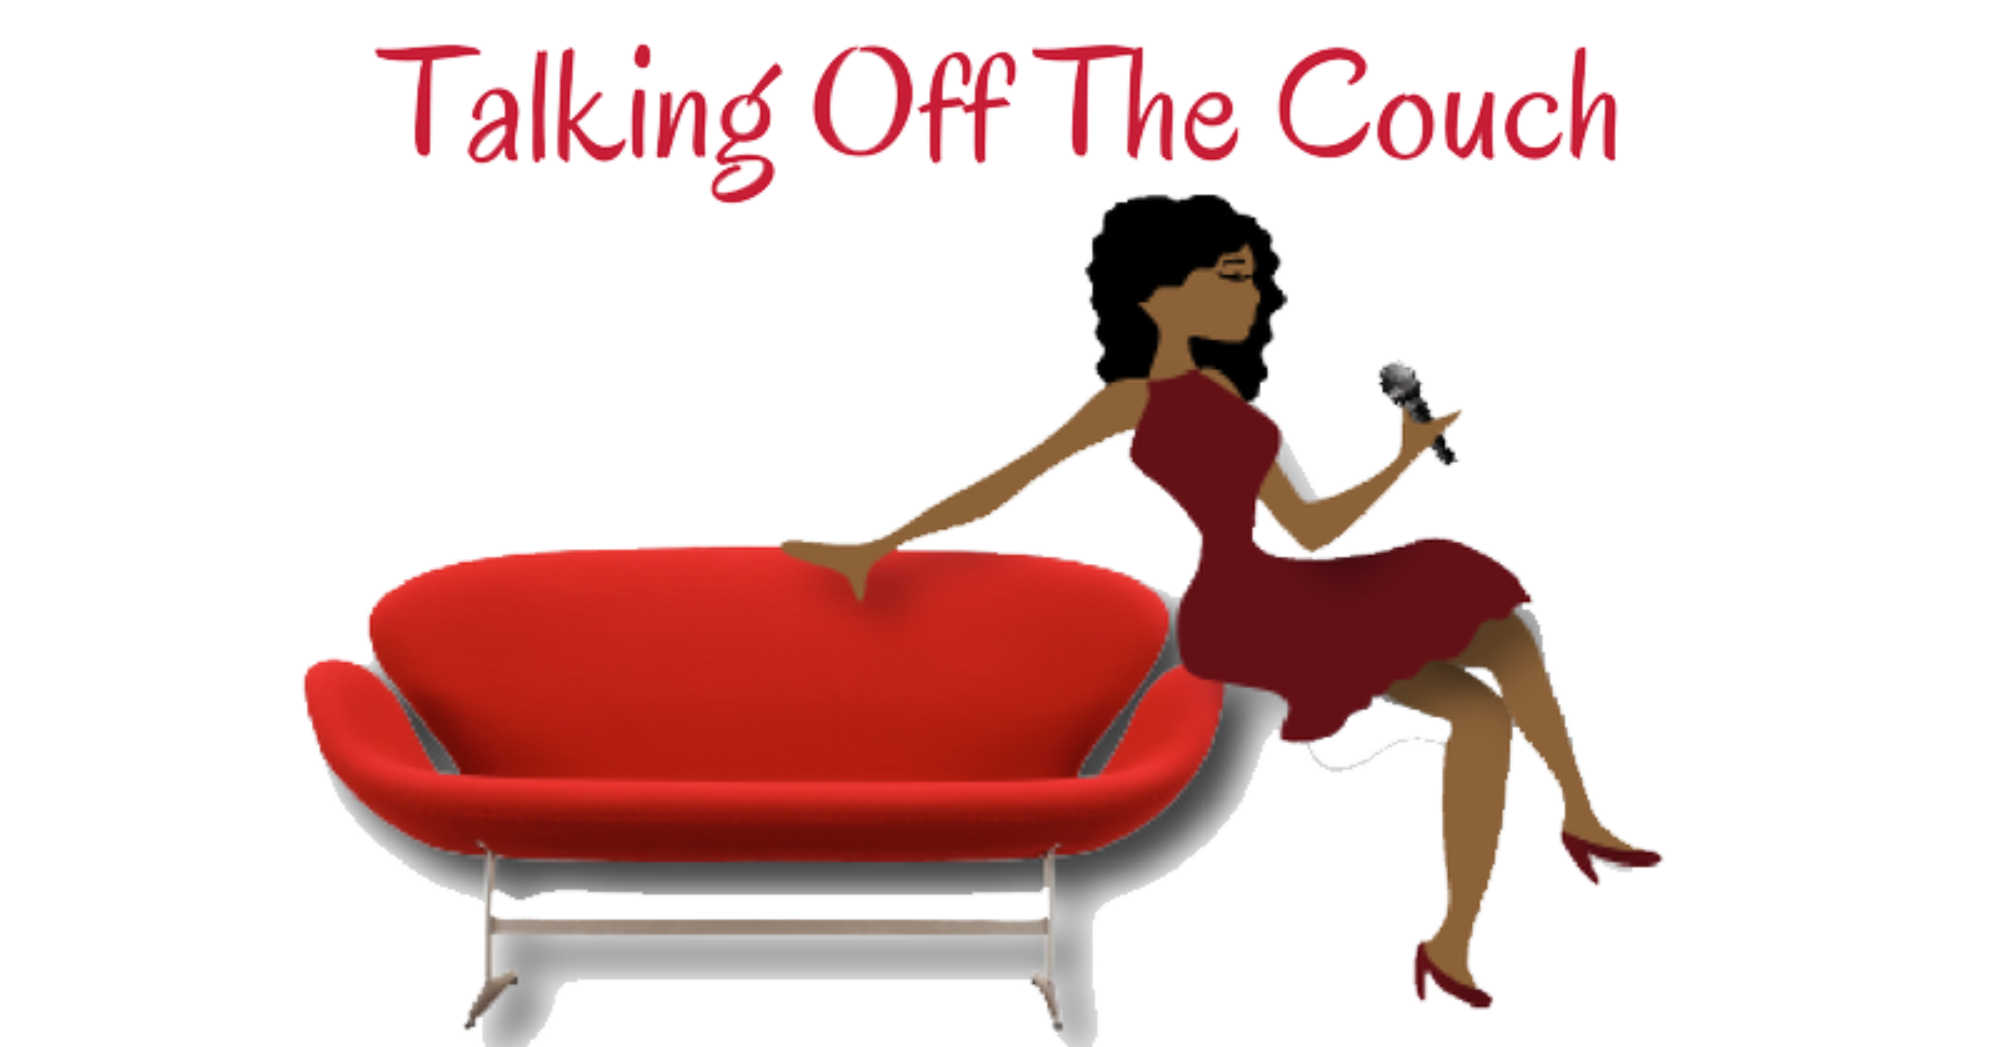 People sitting on a couch png. Talking off the its